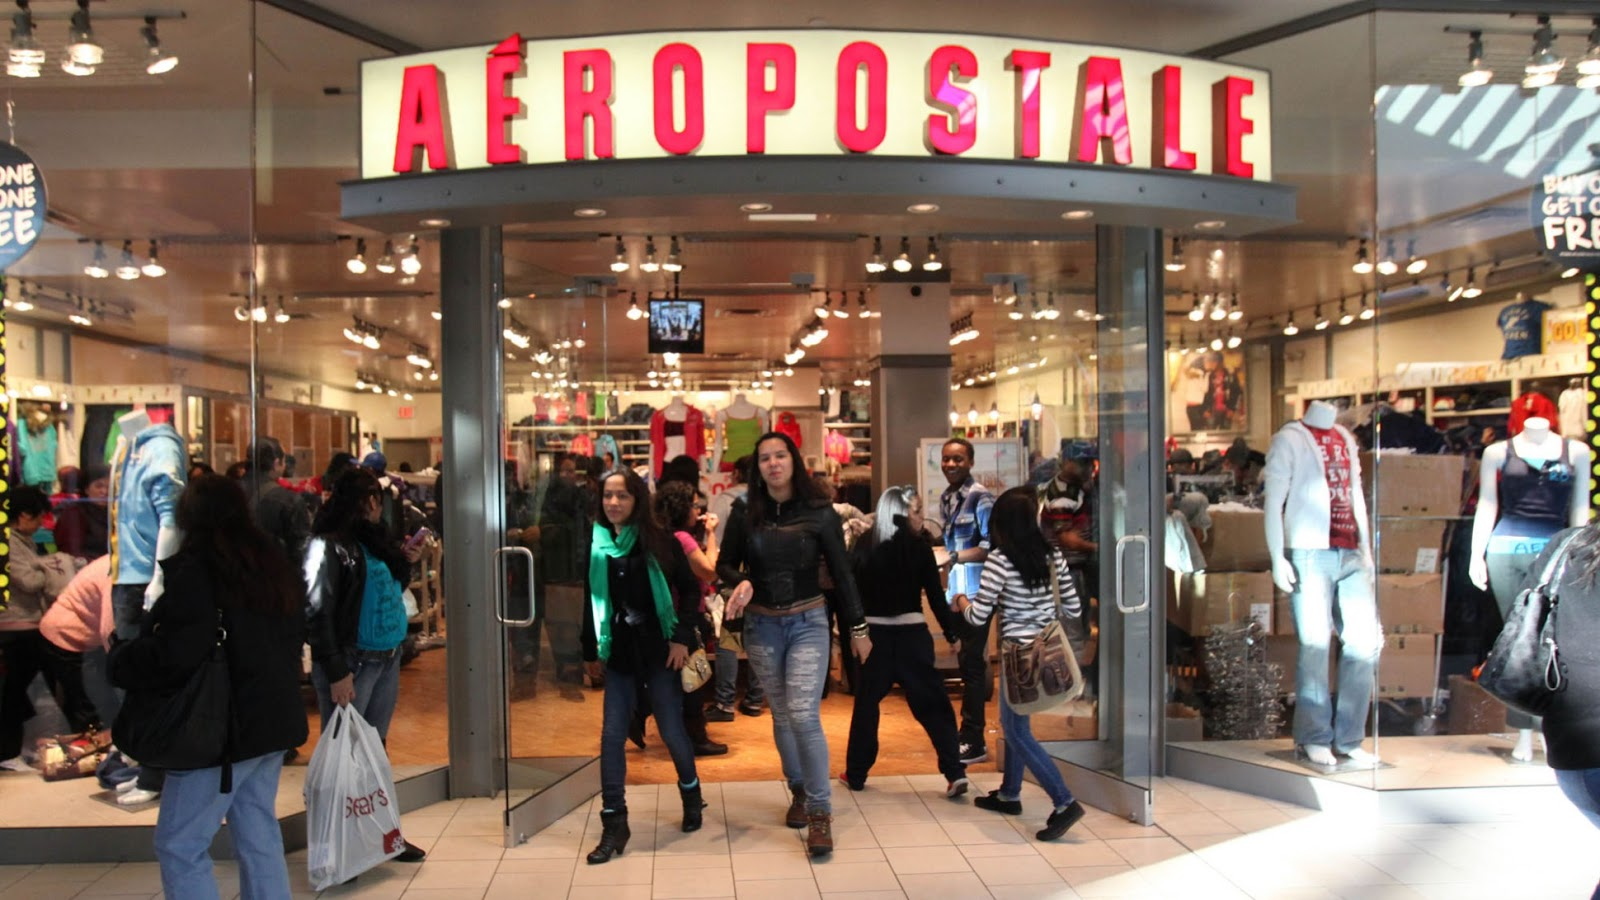 Aéropostale® is a specialty retailer of casual apparel and accessories, principally targeting young women and men. The brand features a focused selection of high quality fashion and fashion basics at compelling values in an innovative and exciting store environment.